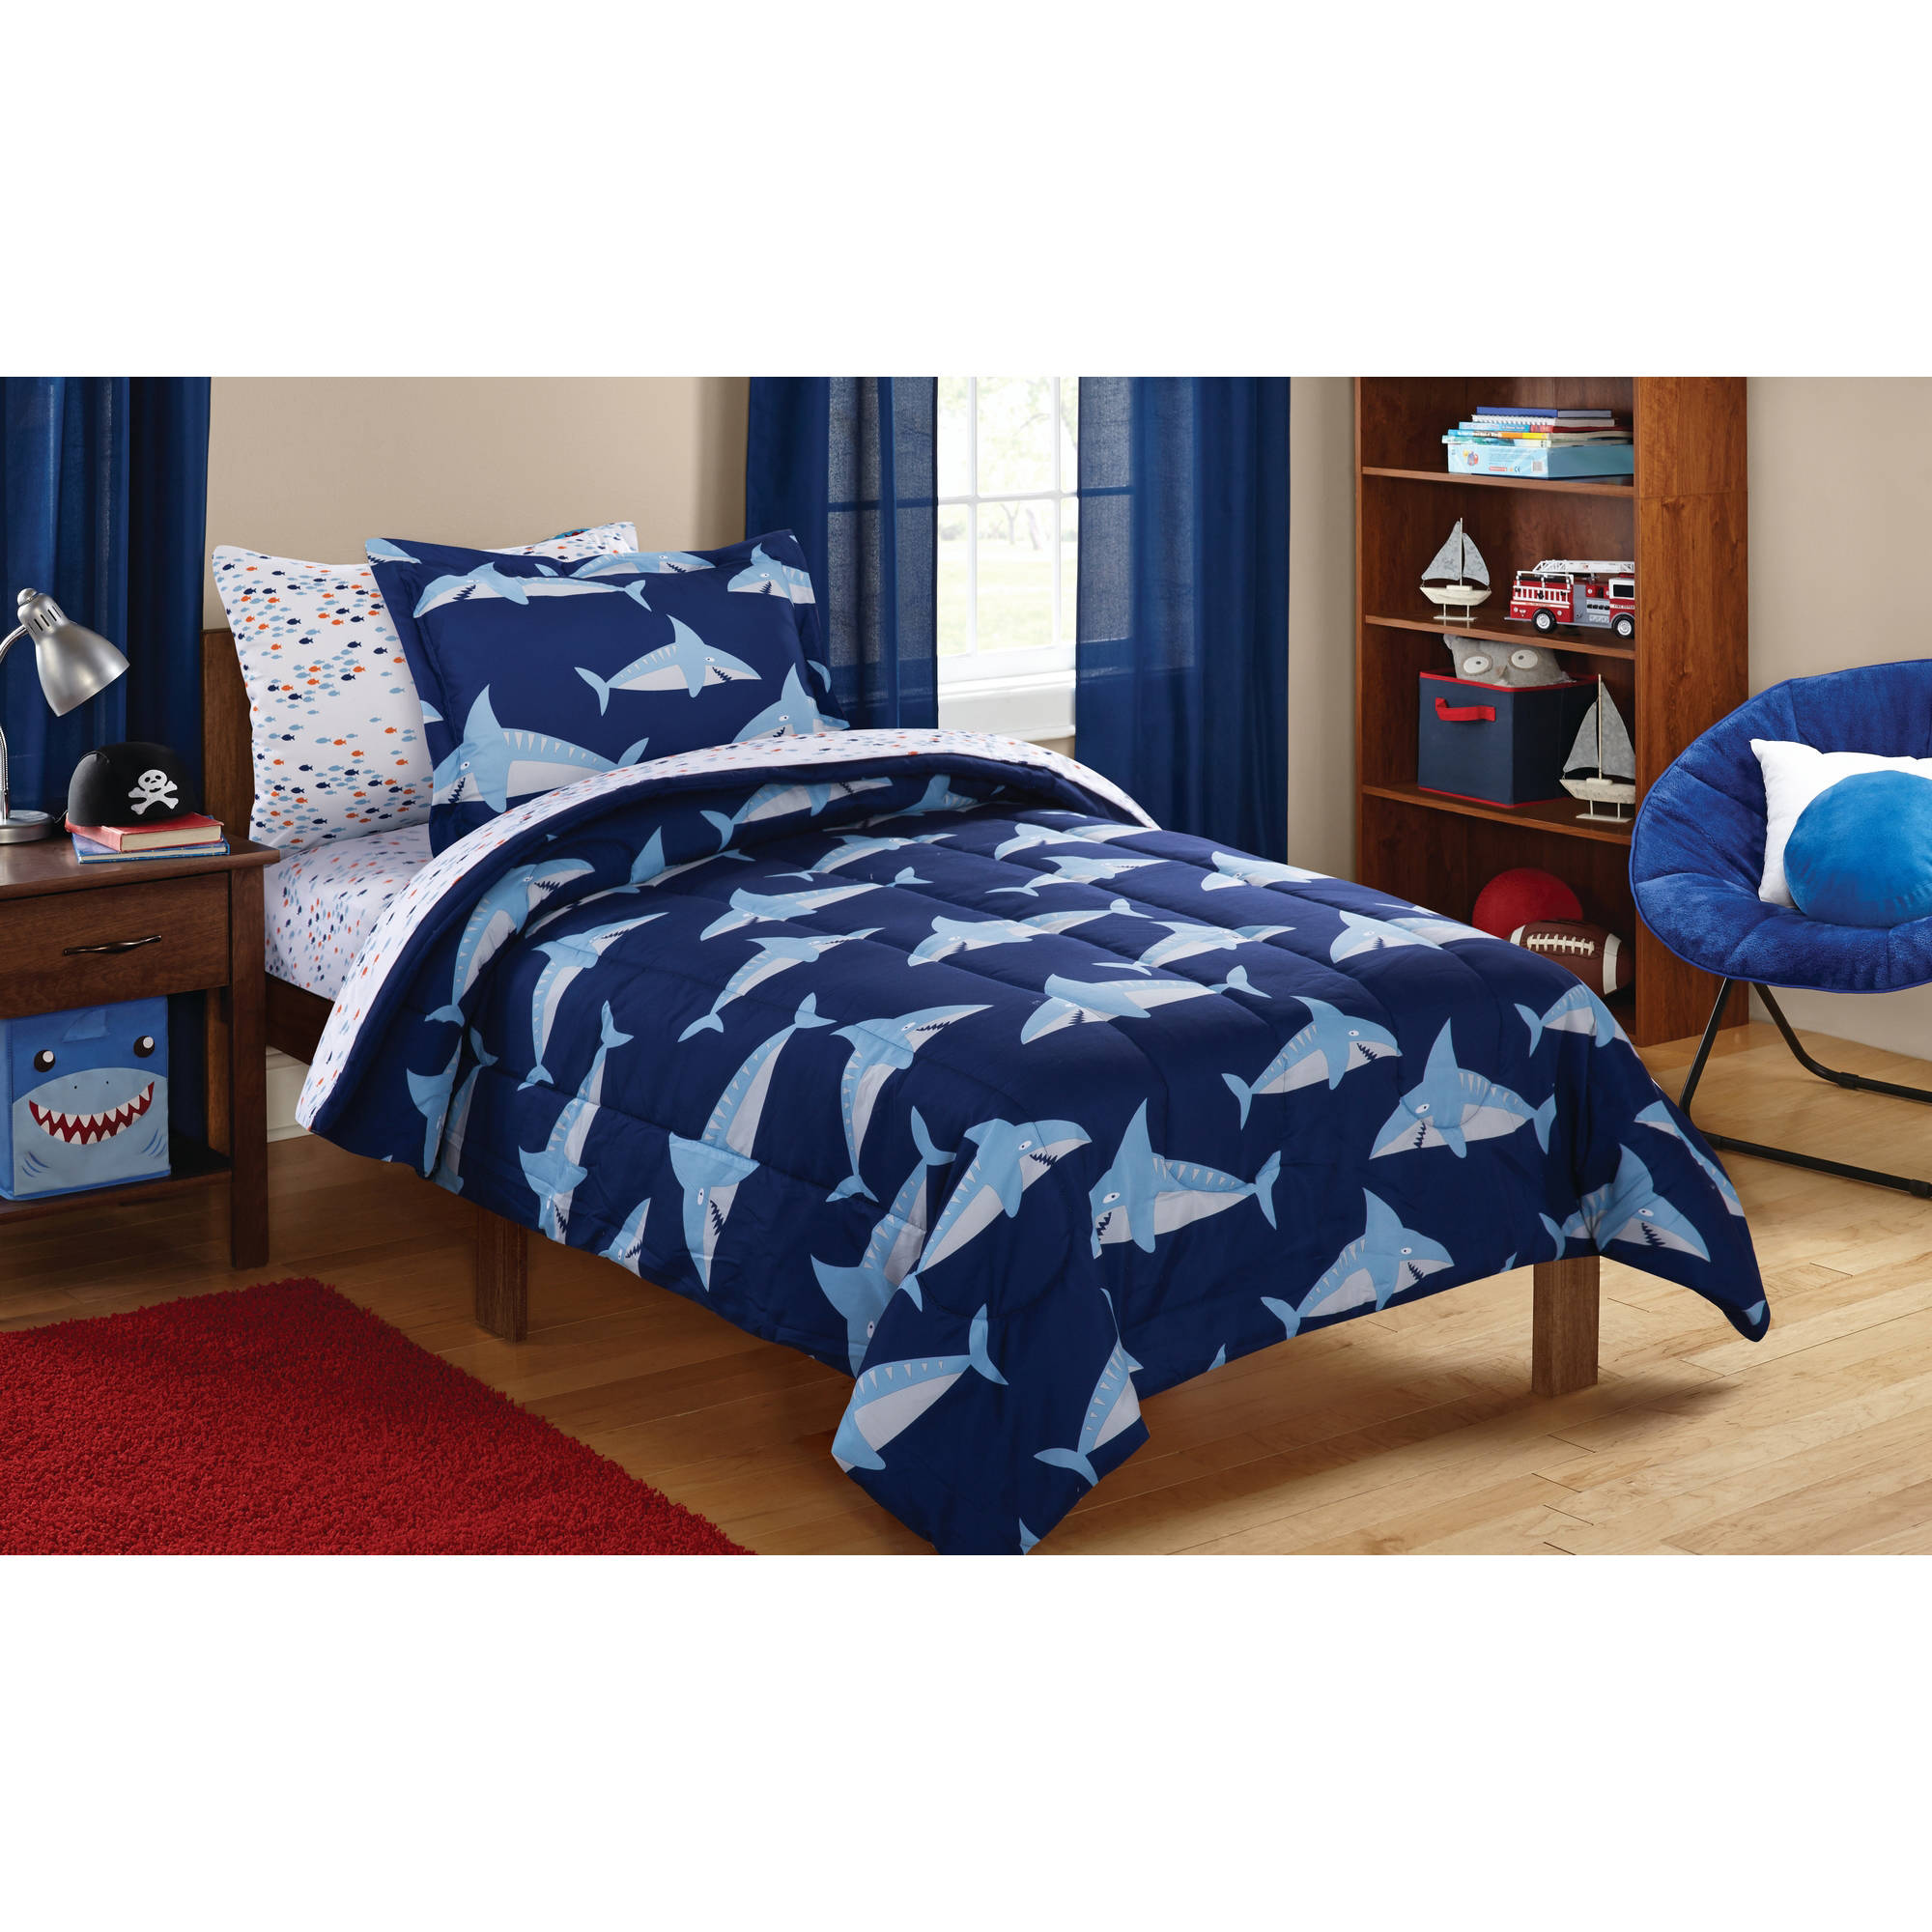 Mainstays Kids Sharks Coordinated Bed in a Bag Complete Bedding Set by Keeco